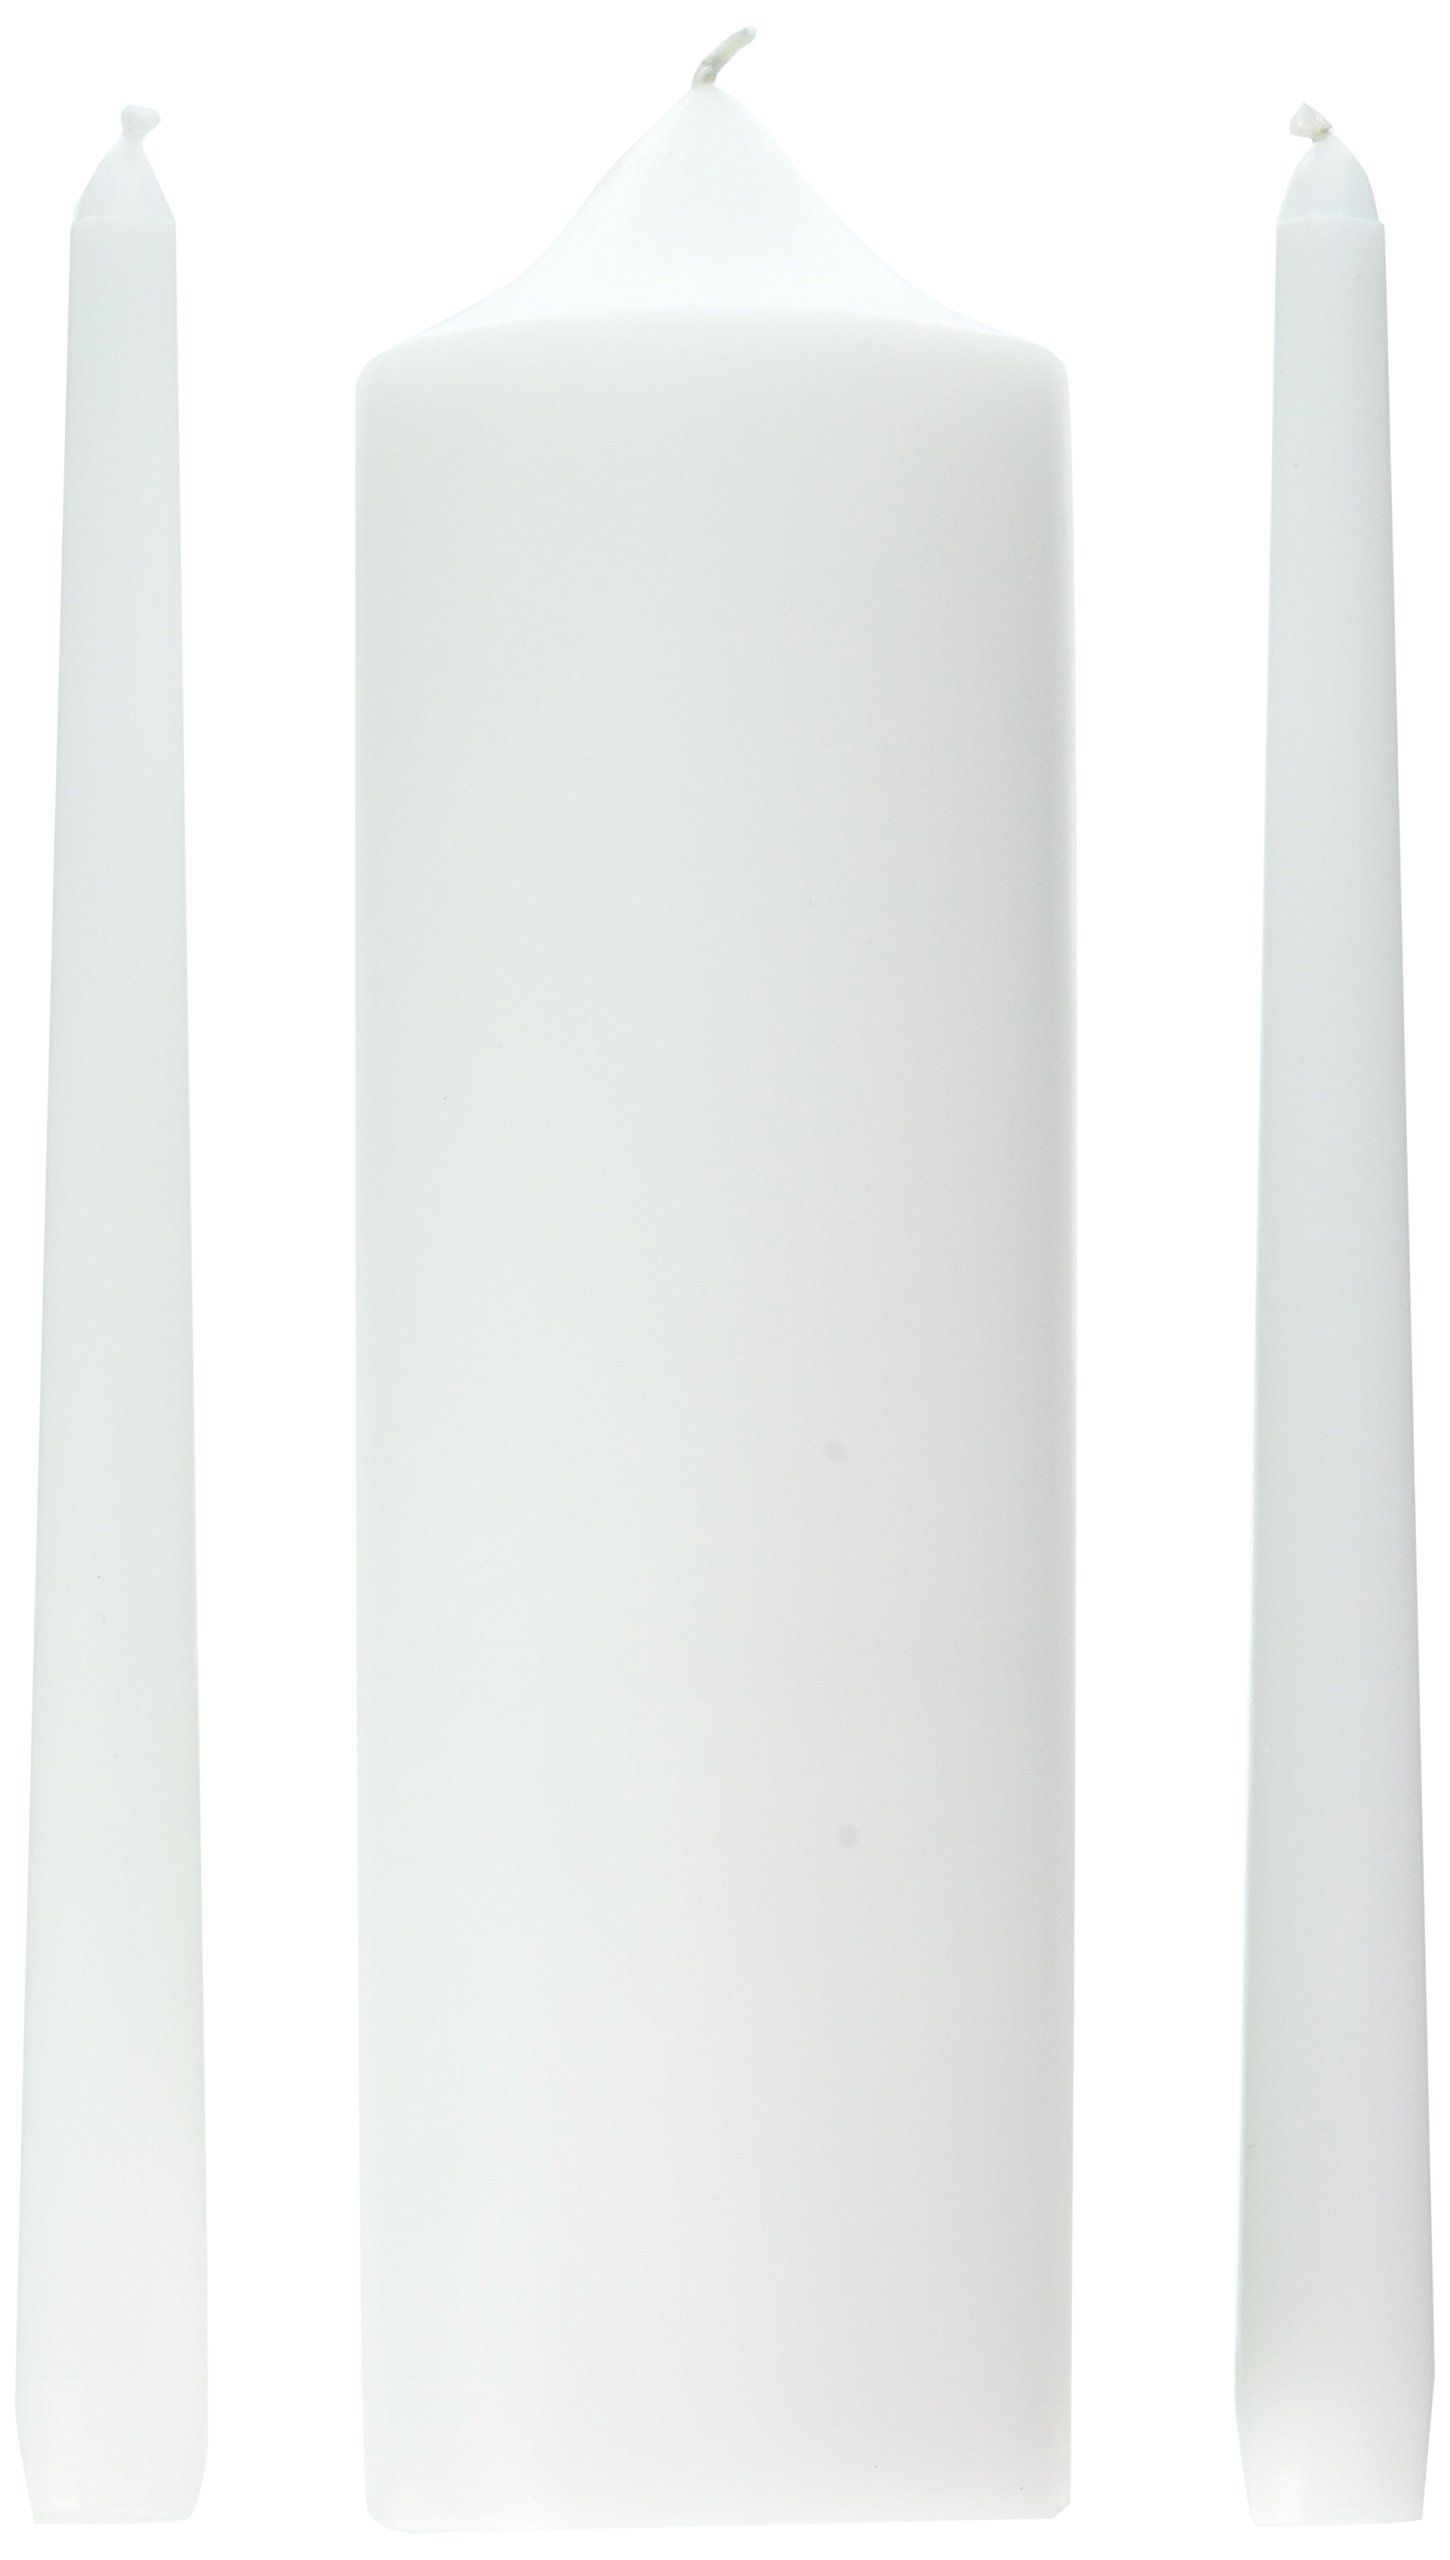 Wedding Accessories 3-Piece Unity Candle Set, 10-Inch, White